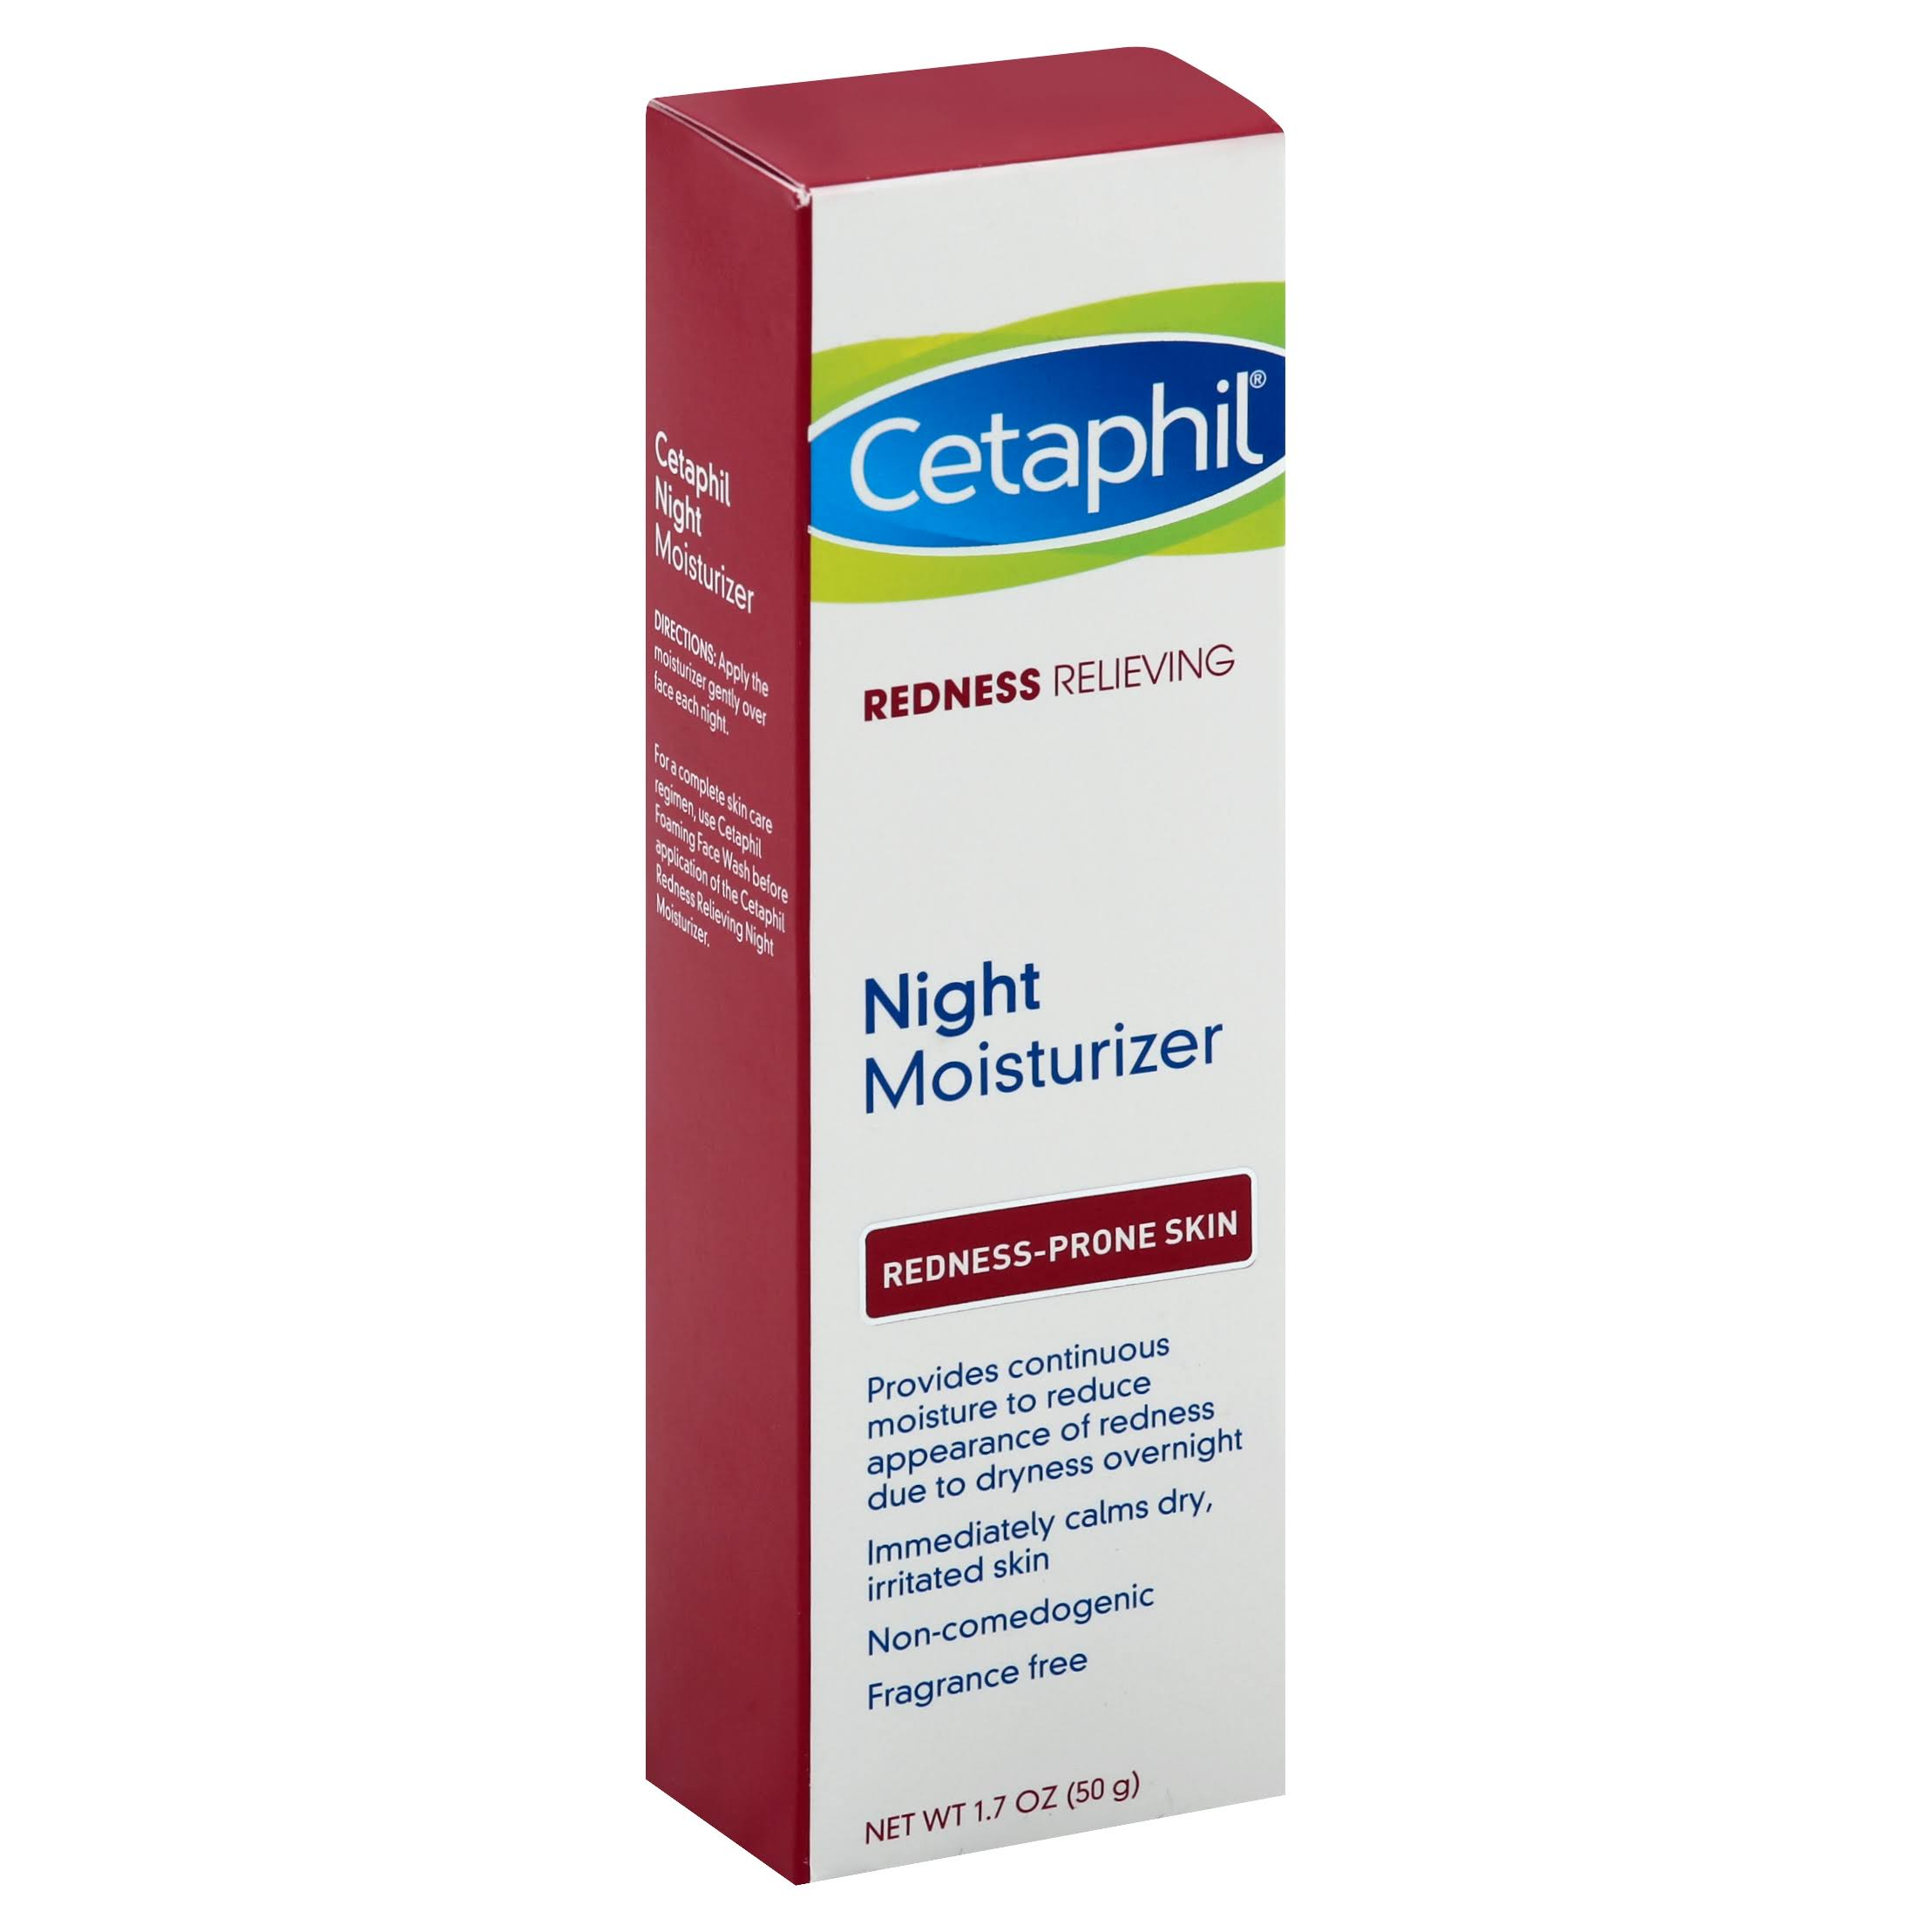 Cetaphil Redness Relieving Night Moisturizer - 1.7oz